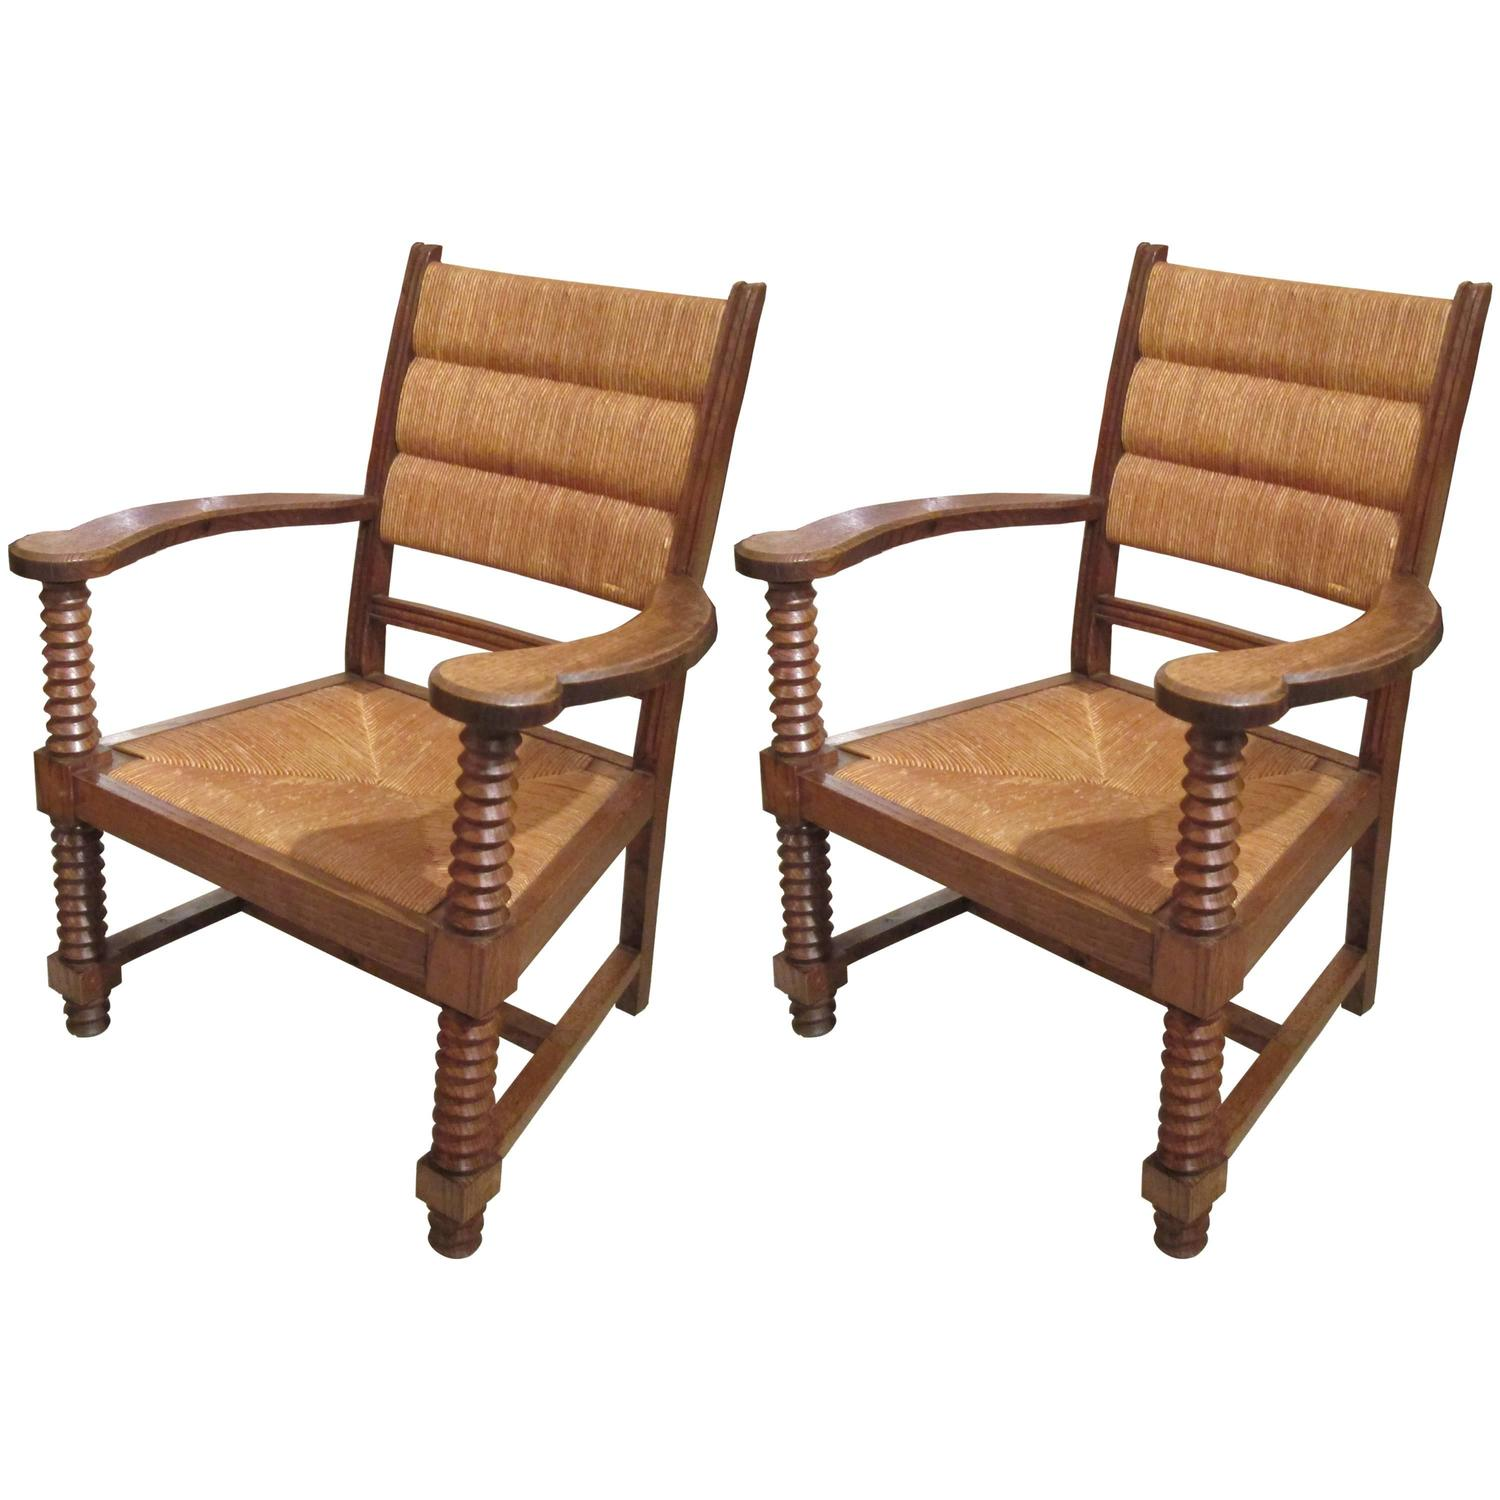 unusual chair legs steelcase think manual pair of caned oak armchairs with barley twist arms